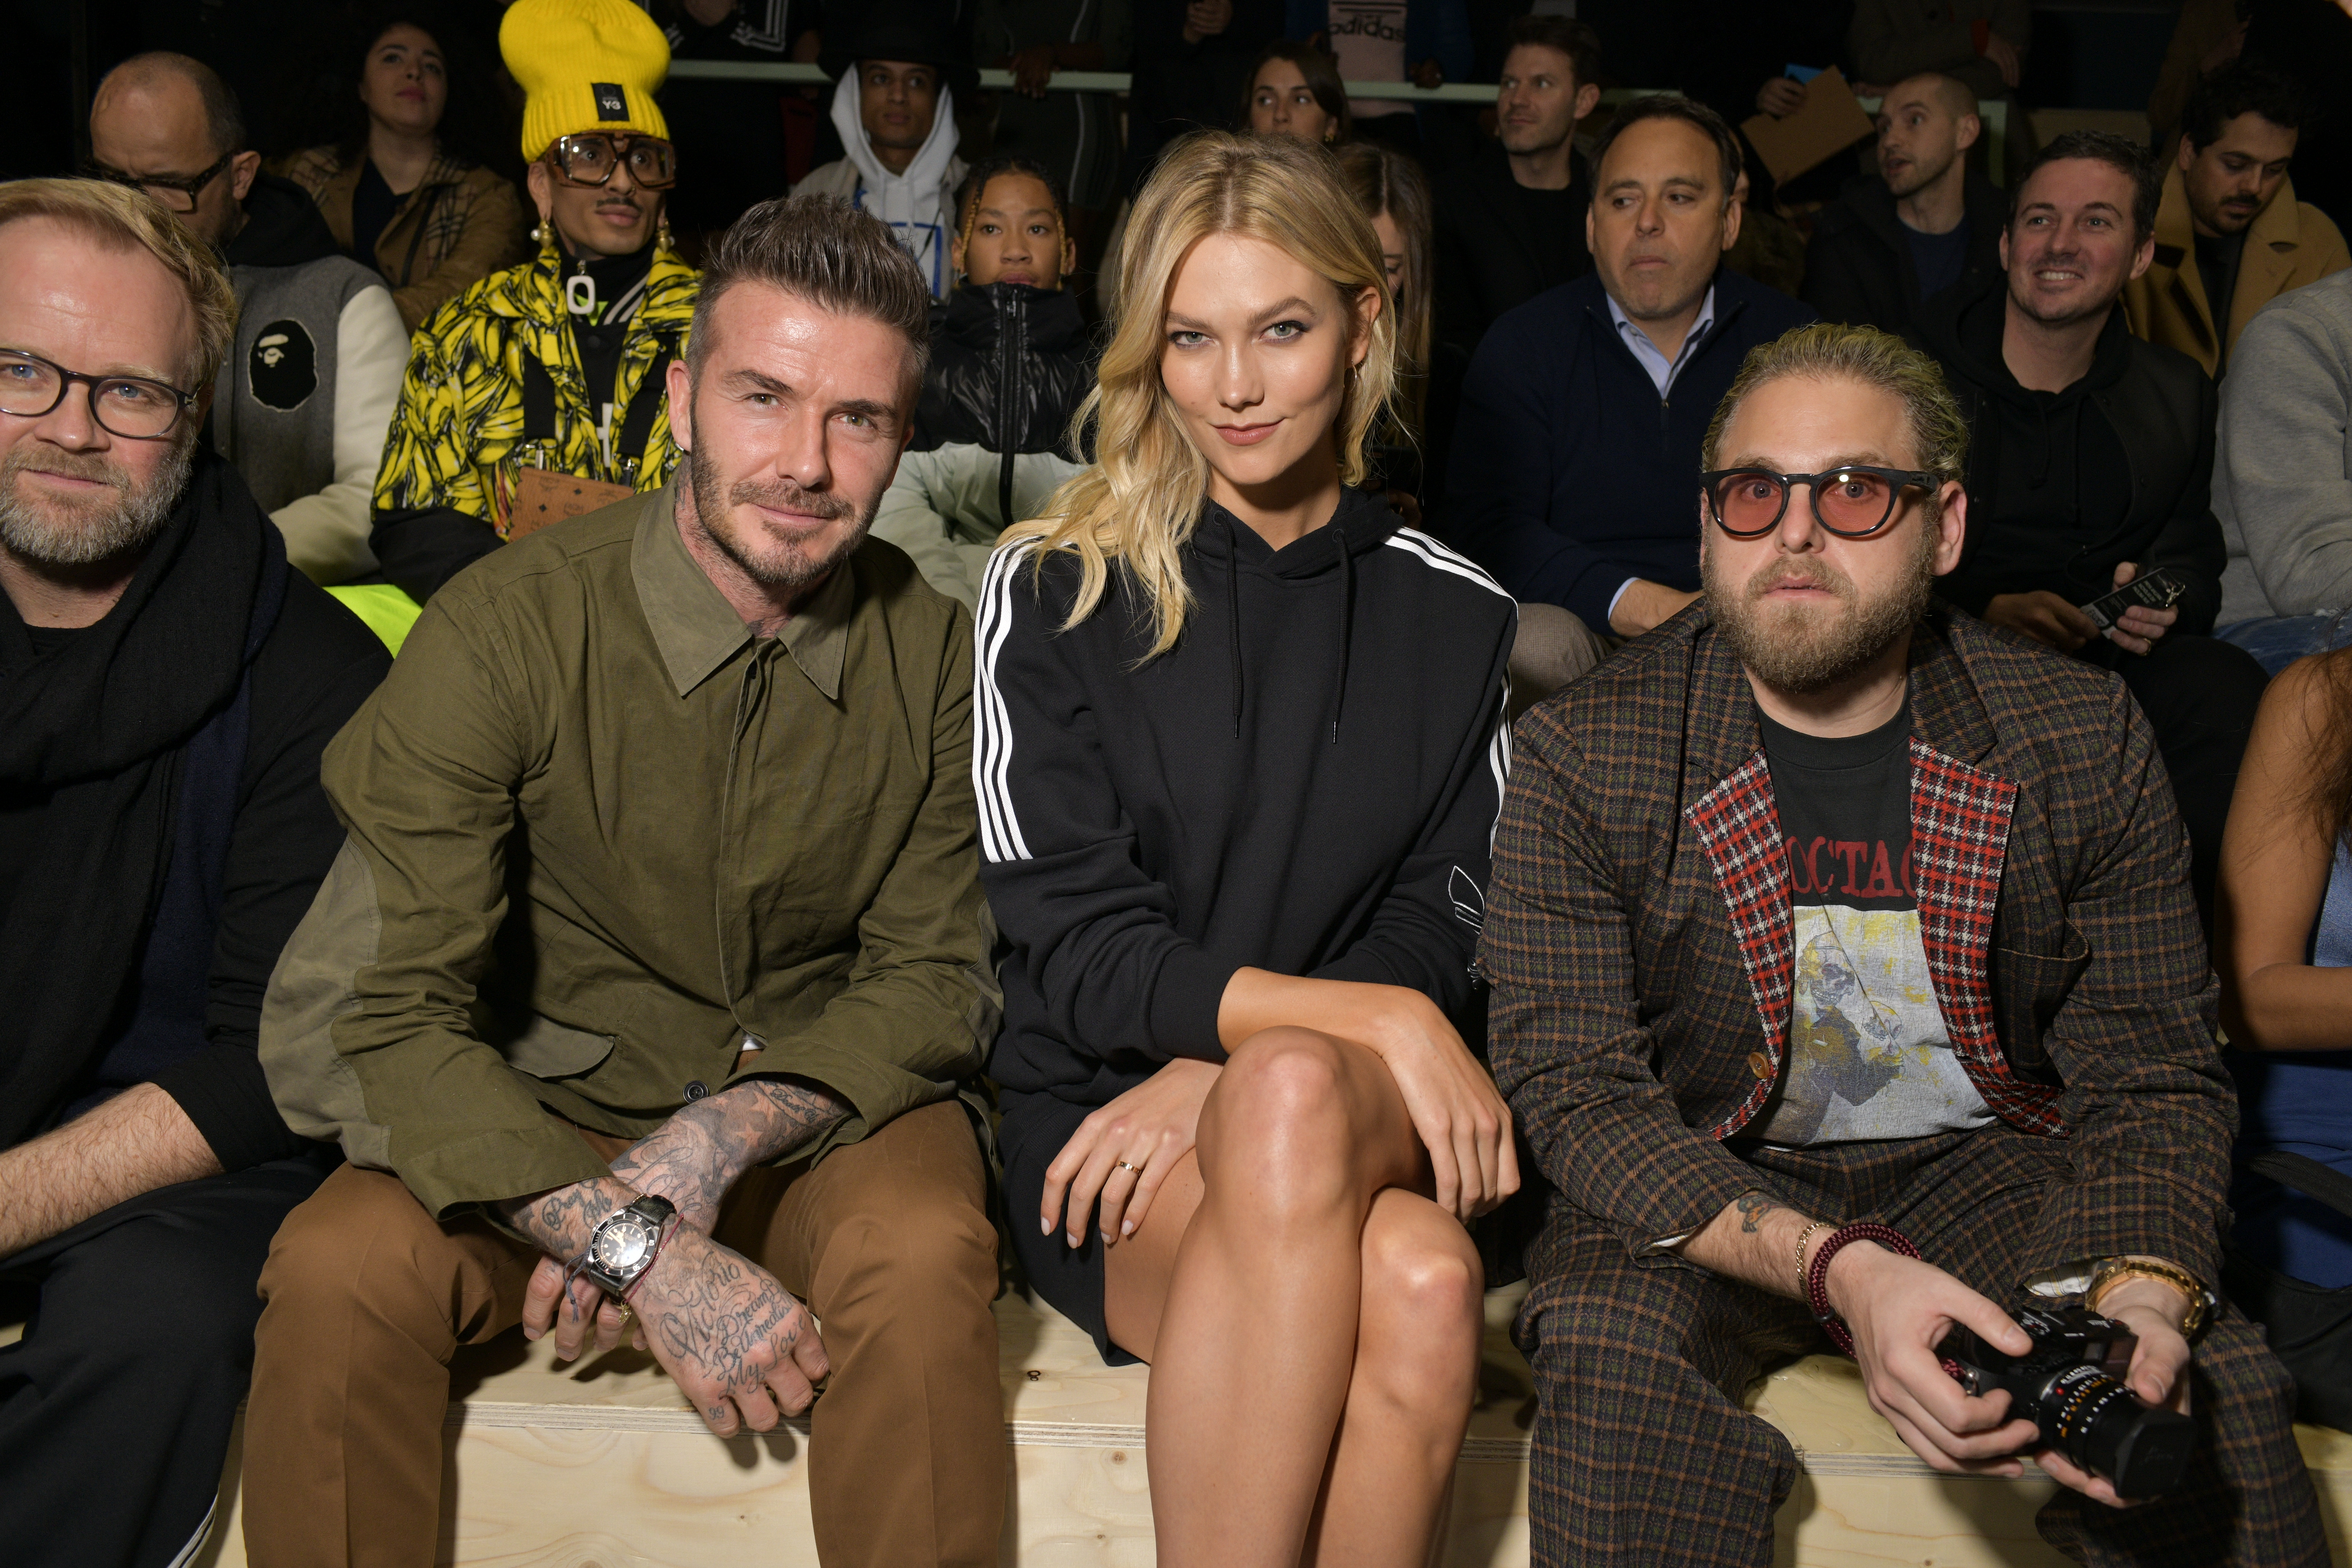 barato trapo Receptor  David Beckham, Pharrell Williams Cheer On Young Talent at Adidas Show – WWD